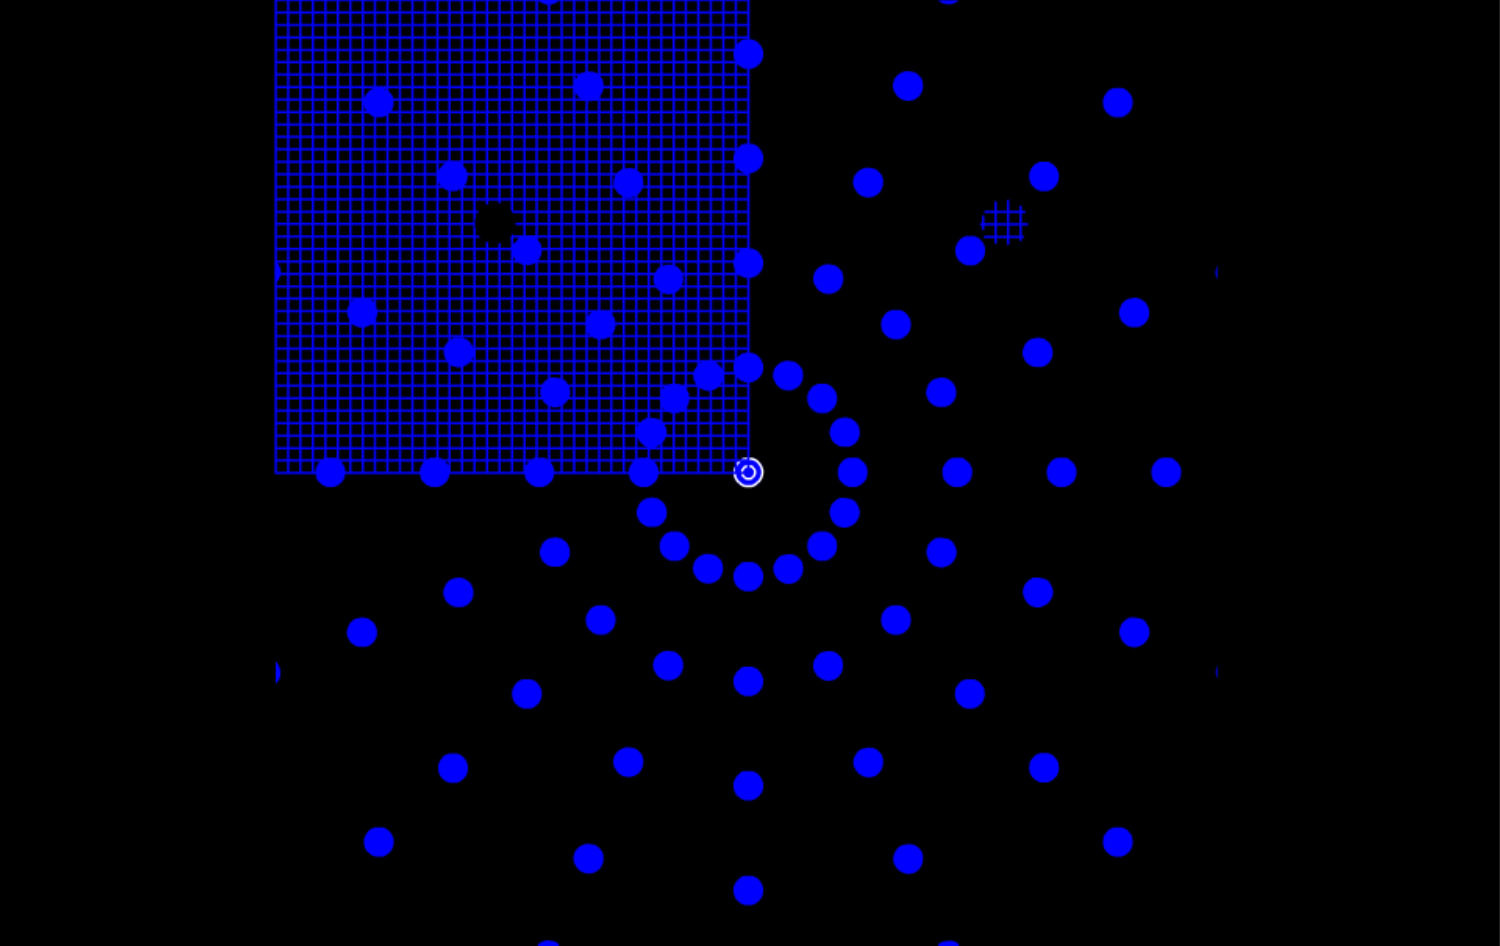 Click on the picture above for a demonstration.    Fixate the center circles while attending to the hole in the center of the blue grid.